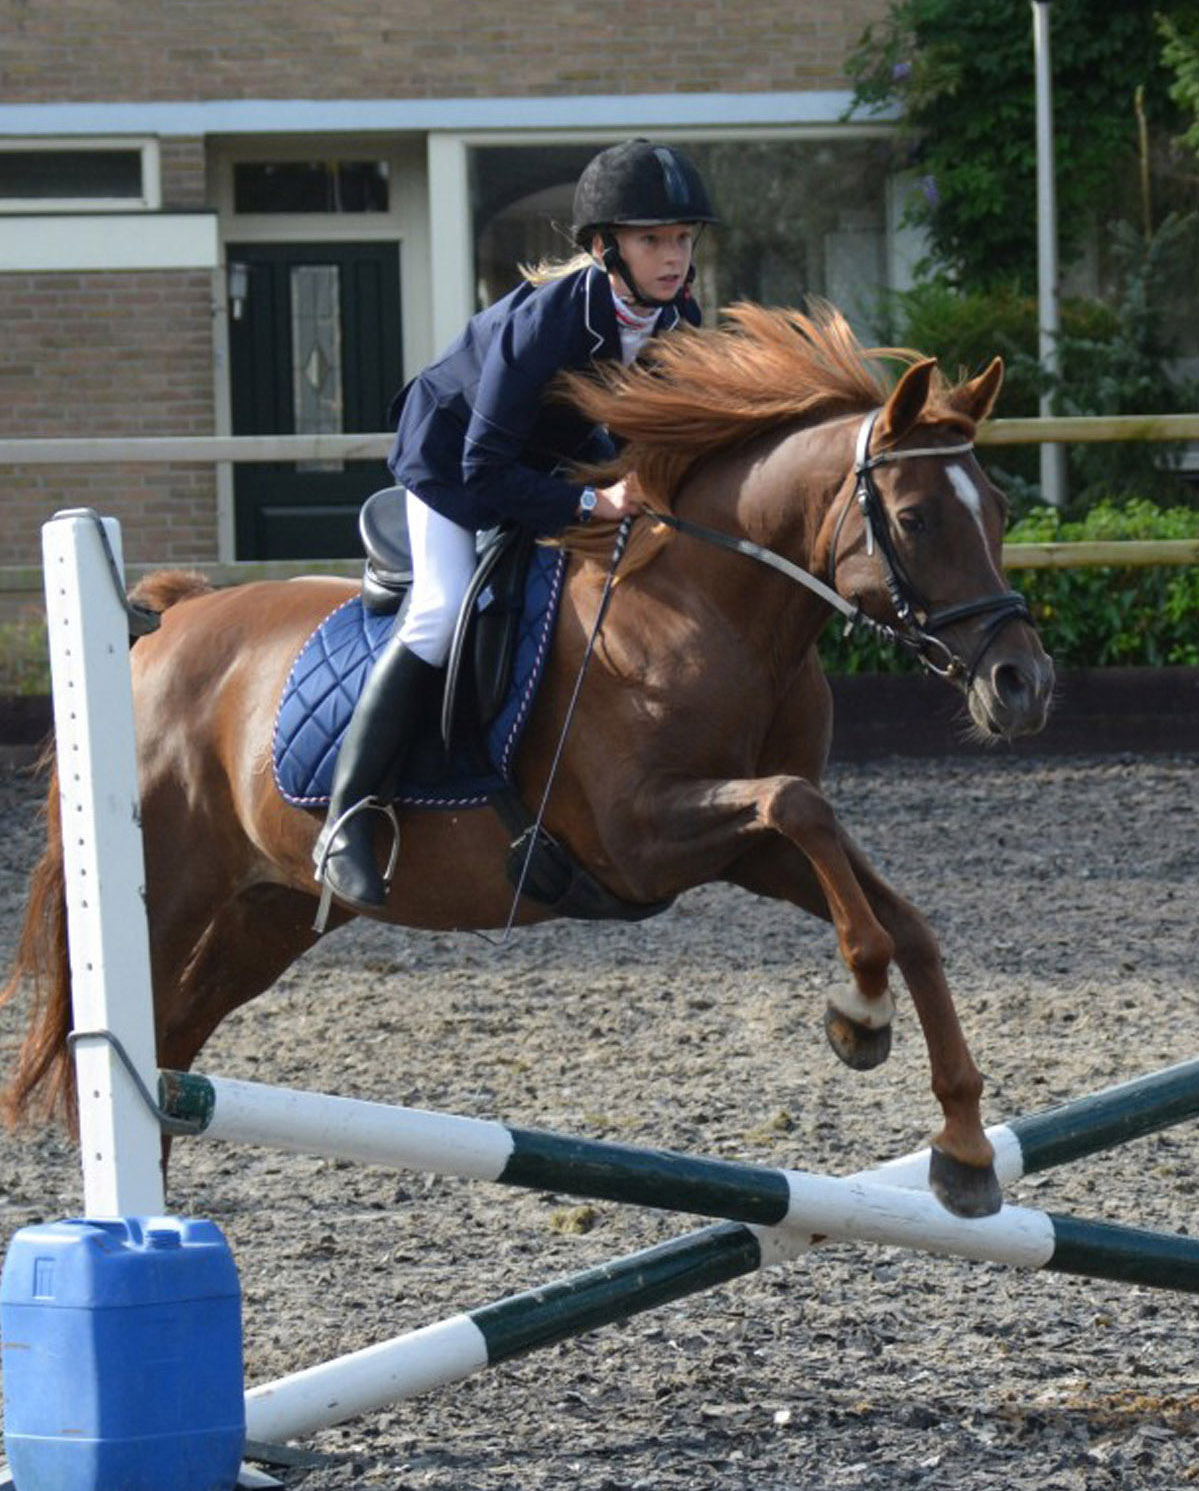 Paardensport vereniging De Lekruiters